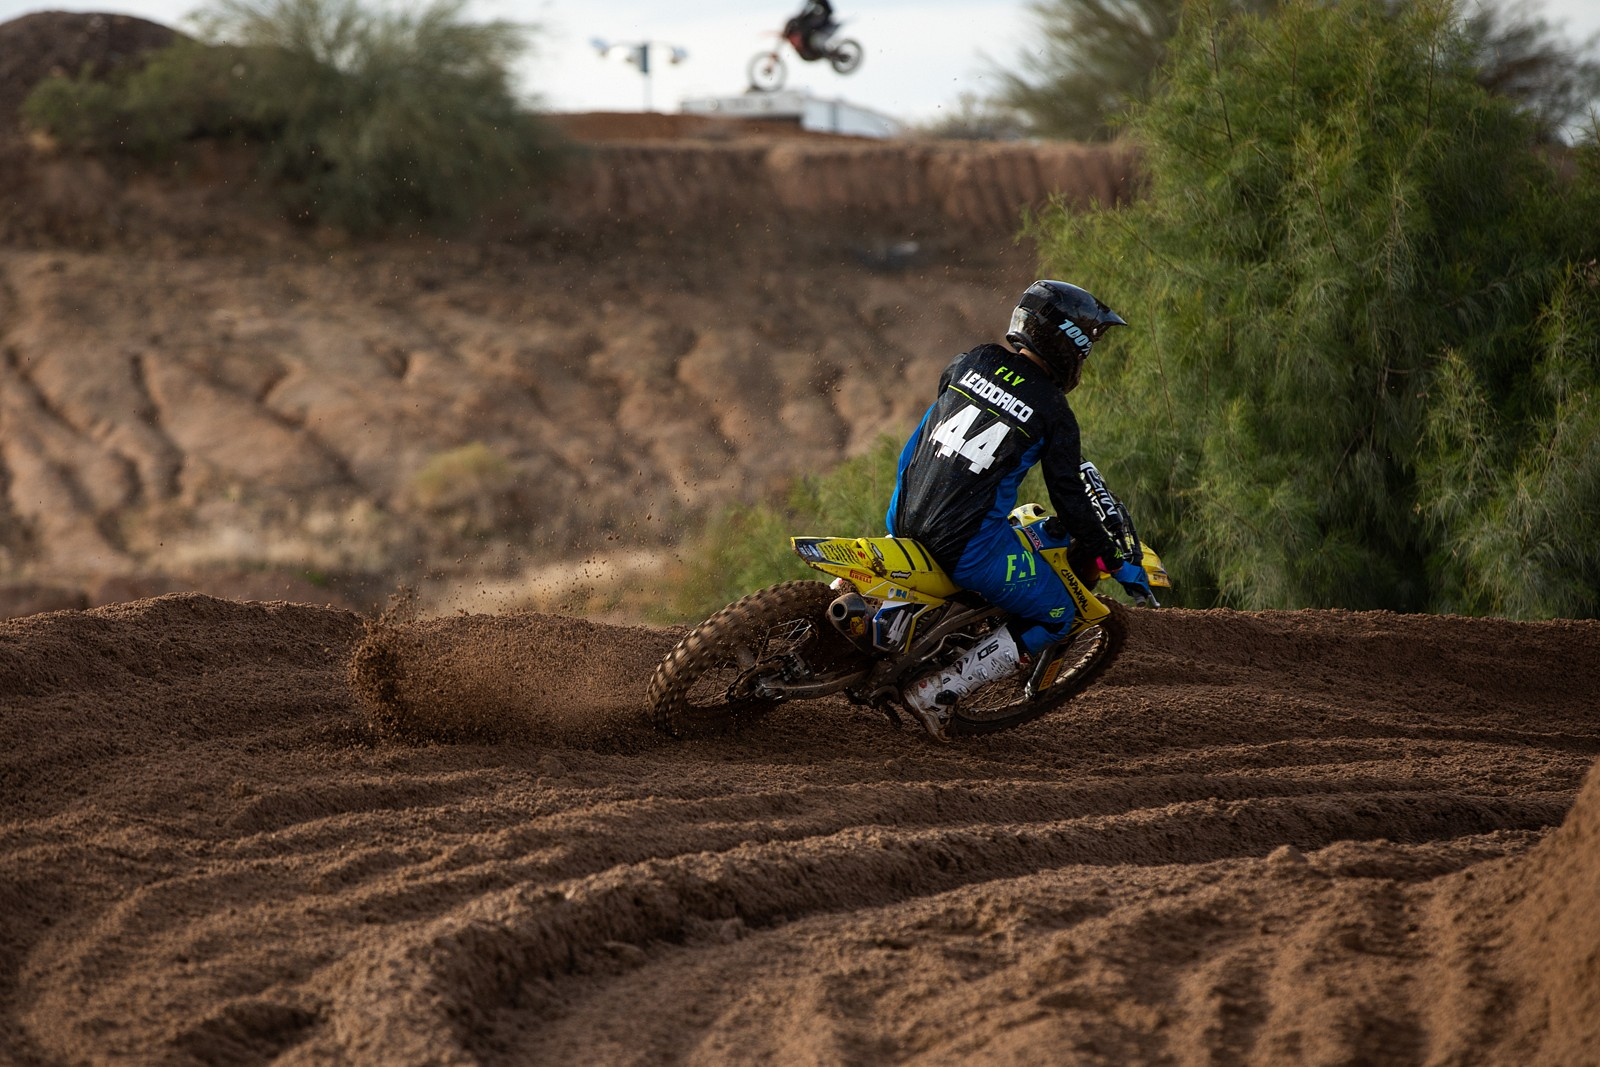 Marcello Leodorico is BarX Chaparral Suzuki's - AZ Open of Motocross, Part 1 - Motocross Pictures - Vital MX